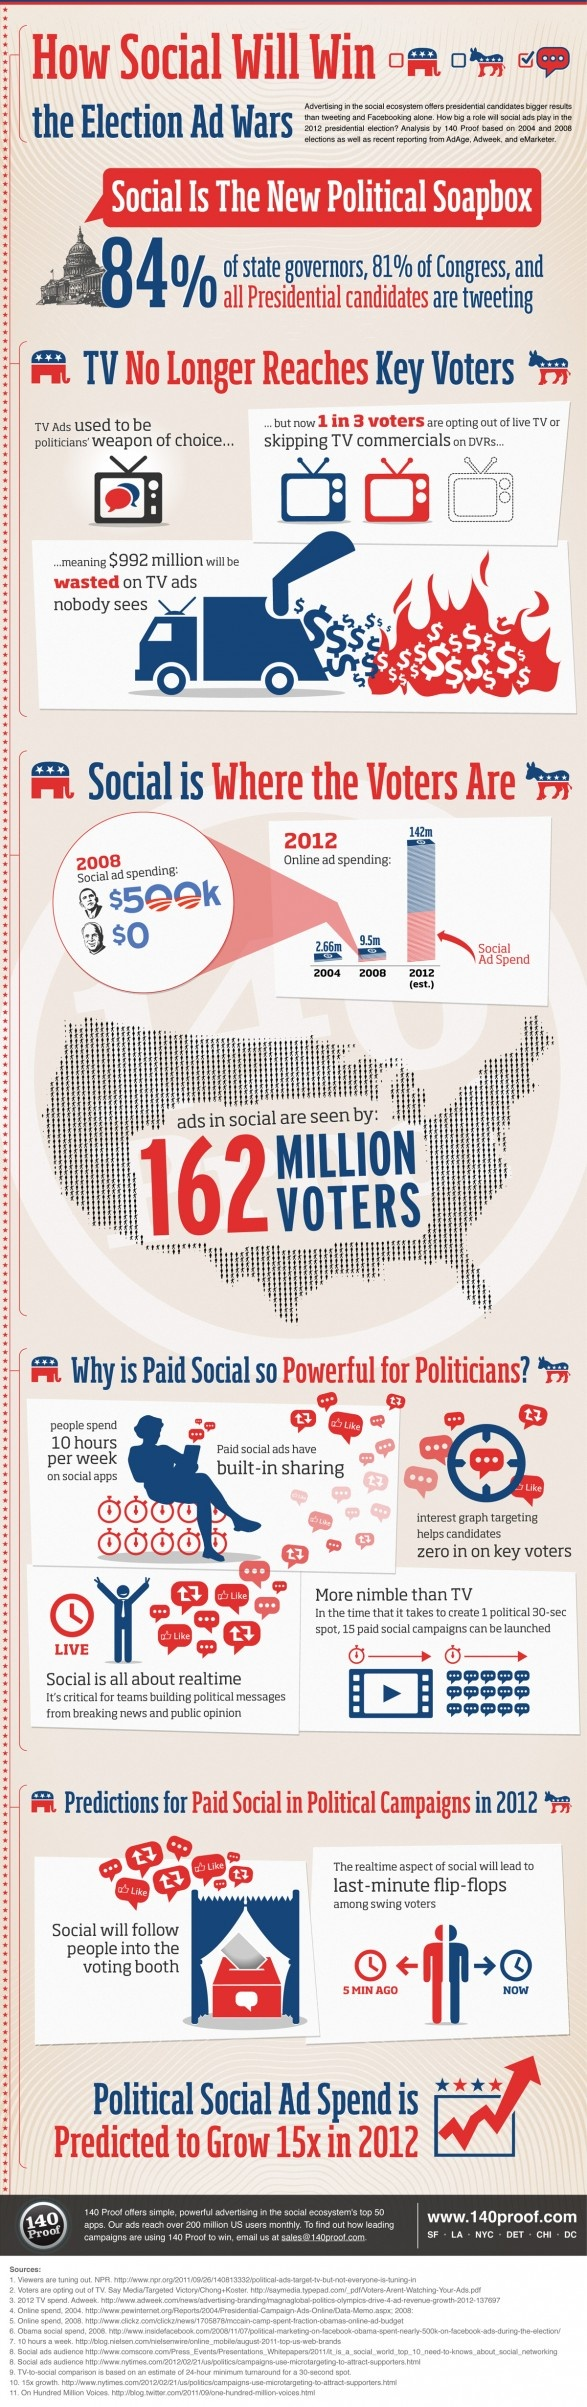 How Social Ads Will Win the Election Ad Wars | Visual.ly - via http://bit.ly/epinner